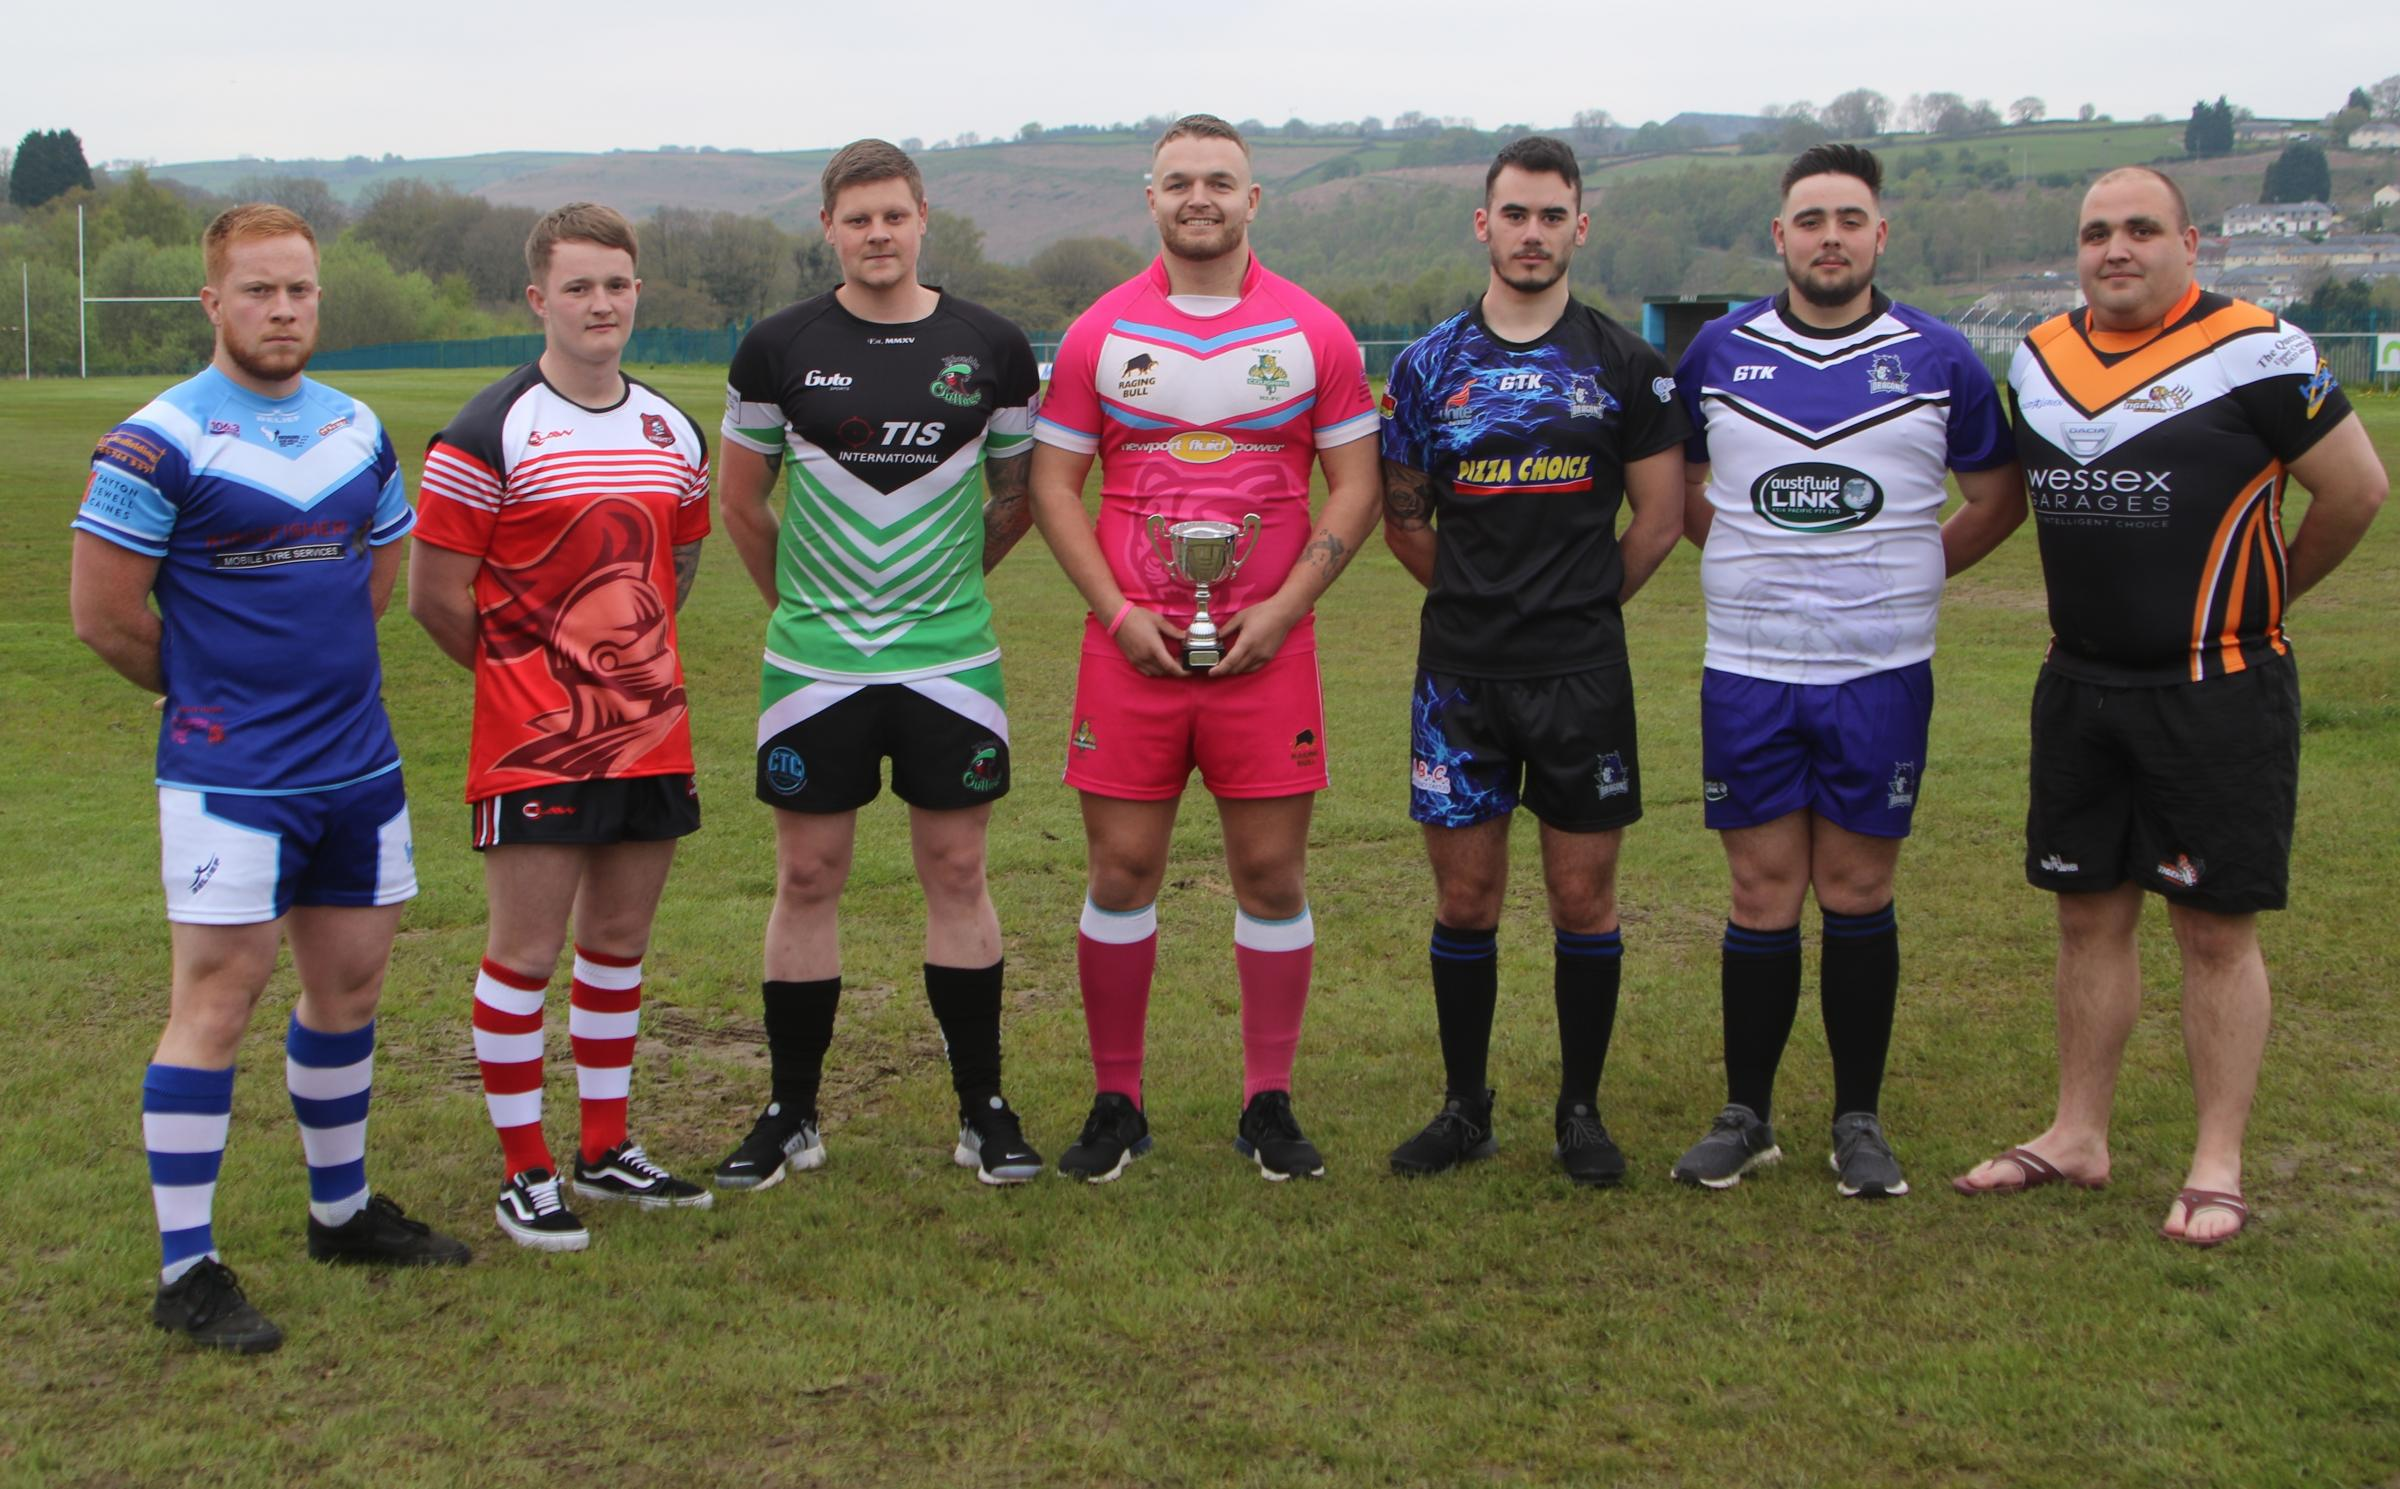 READY FOR BATTLE: Players from each of the Premier League teams gathered ahead of the new season. Picture: Ian Lovell